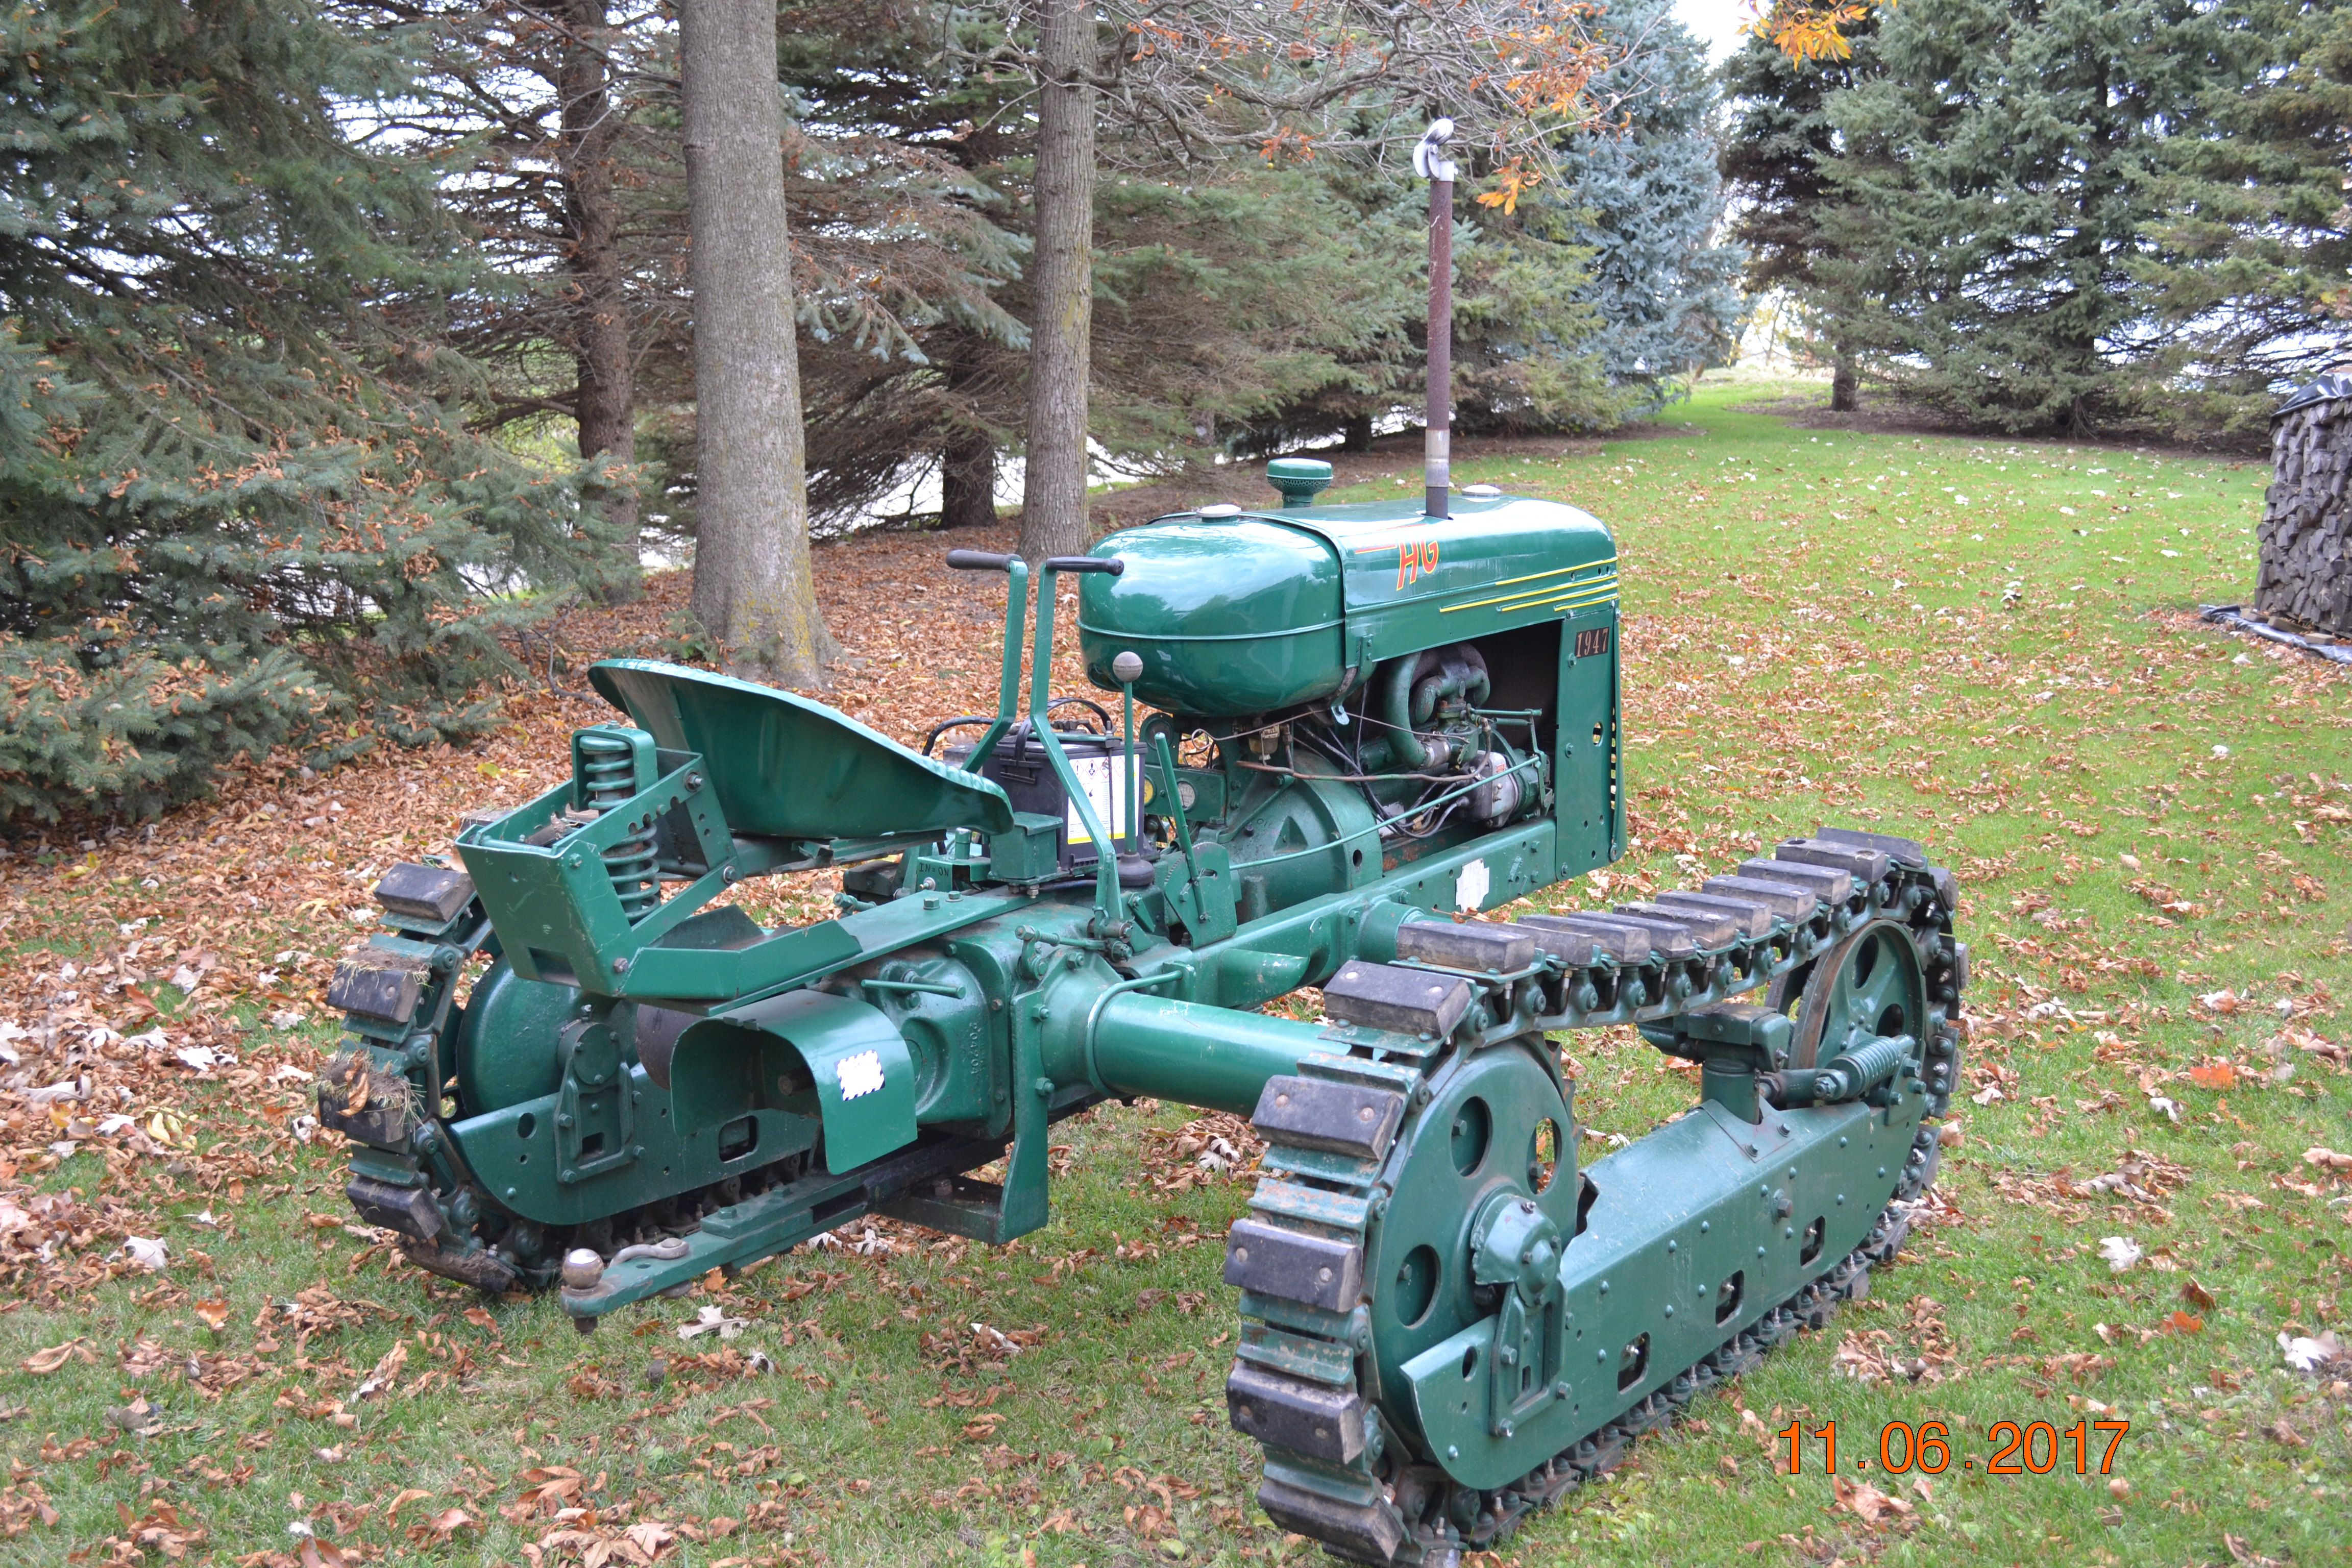 Oliver HG 68 Crawler | A few of my past & present tractors ... on